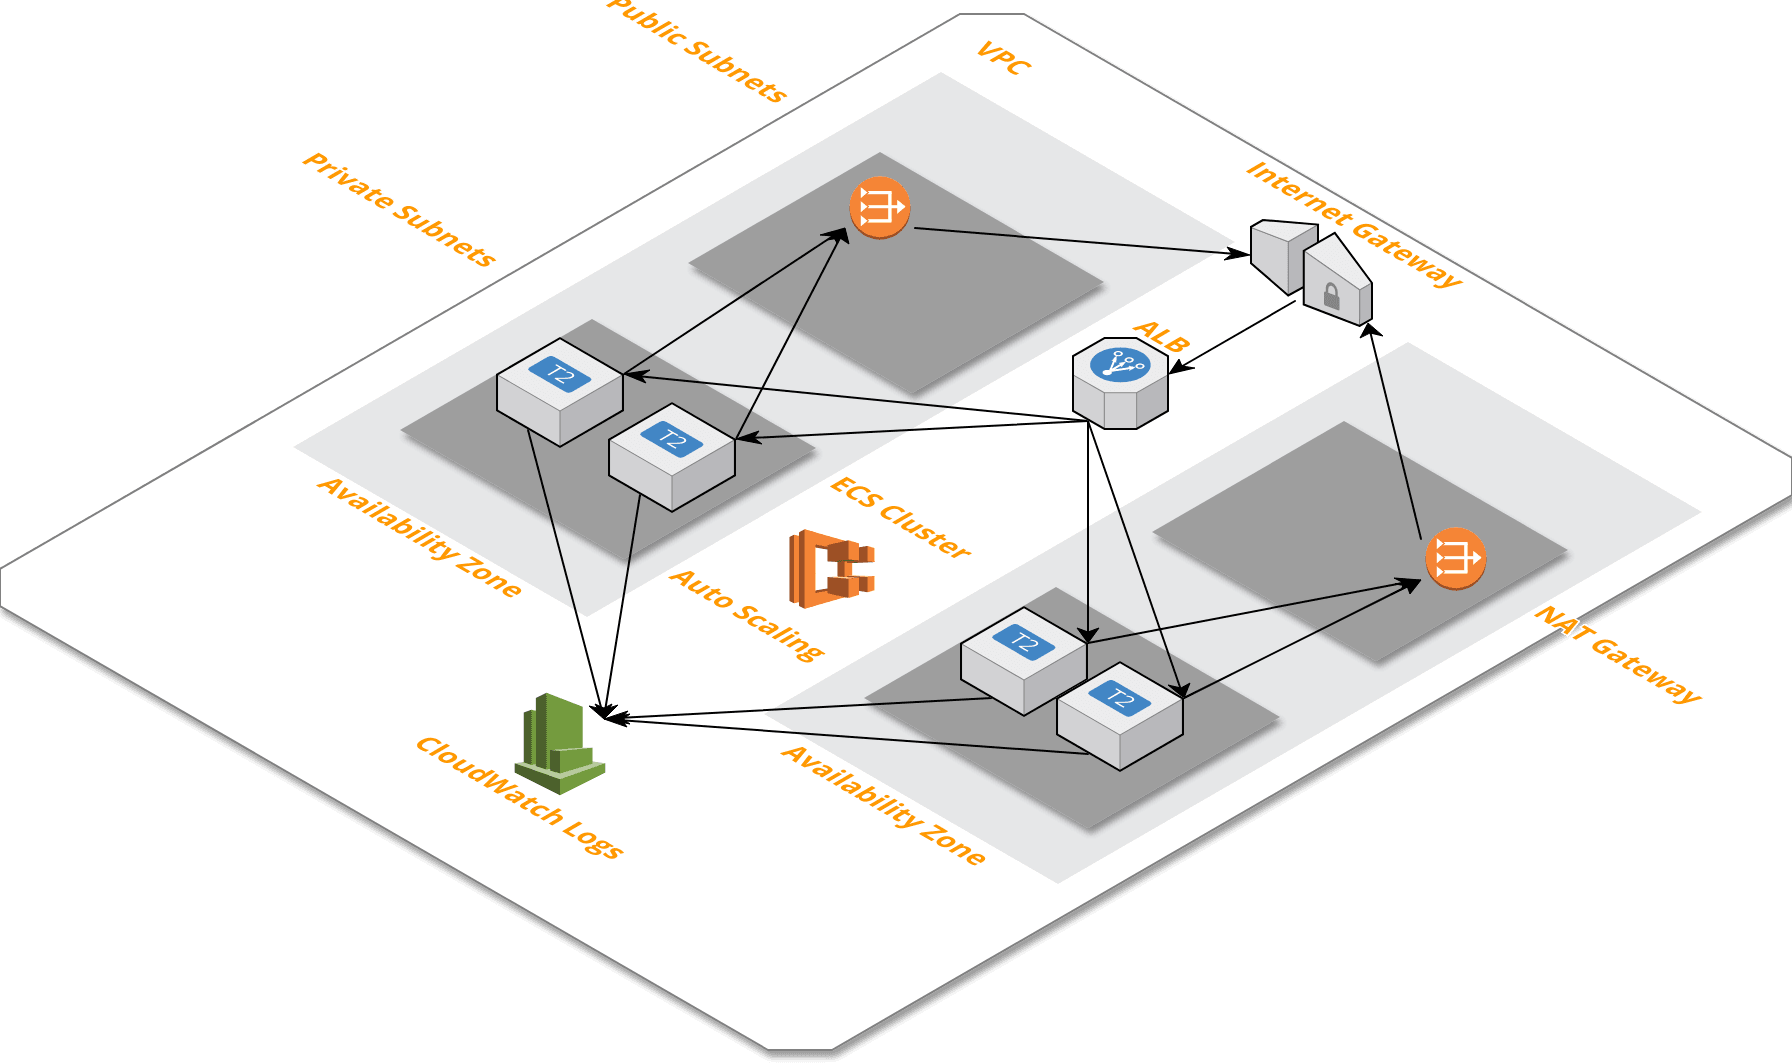 /the-services-stack-235cca4a15f7 feature image